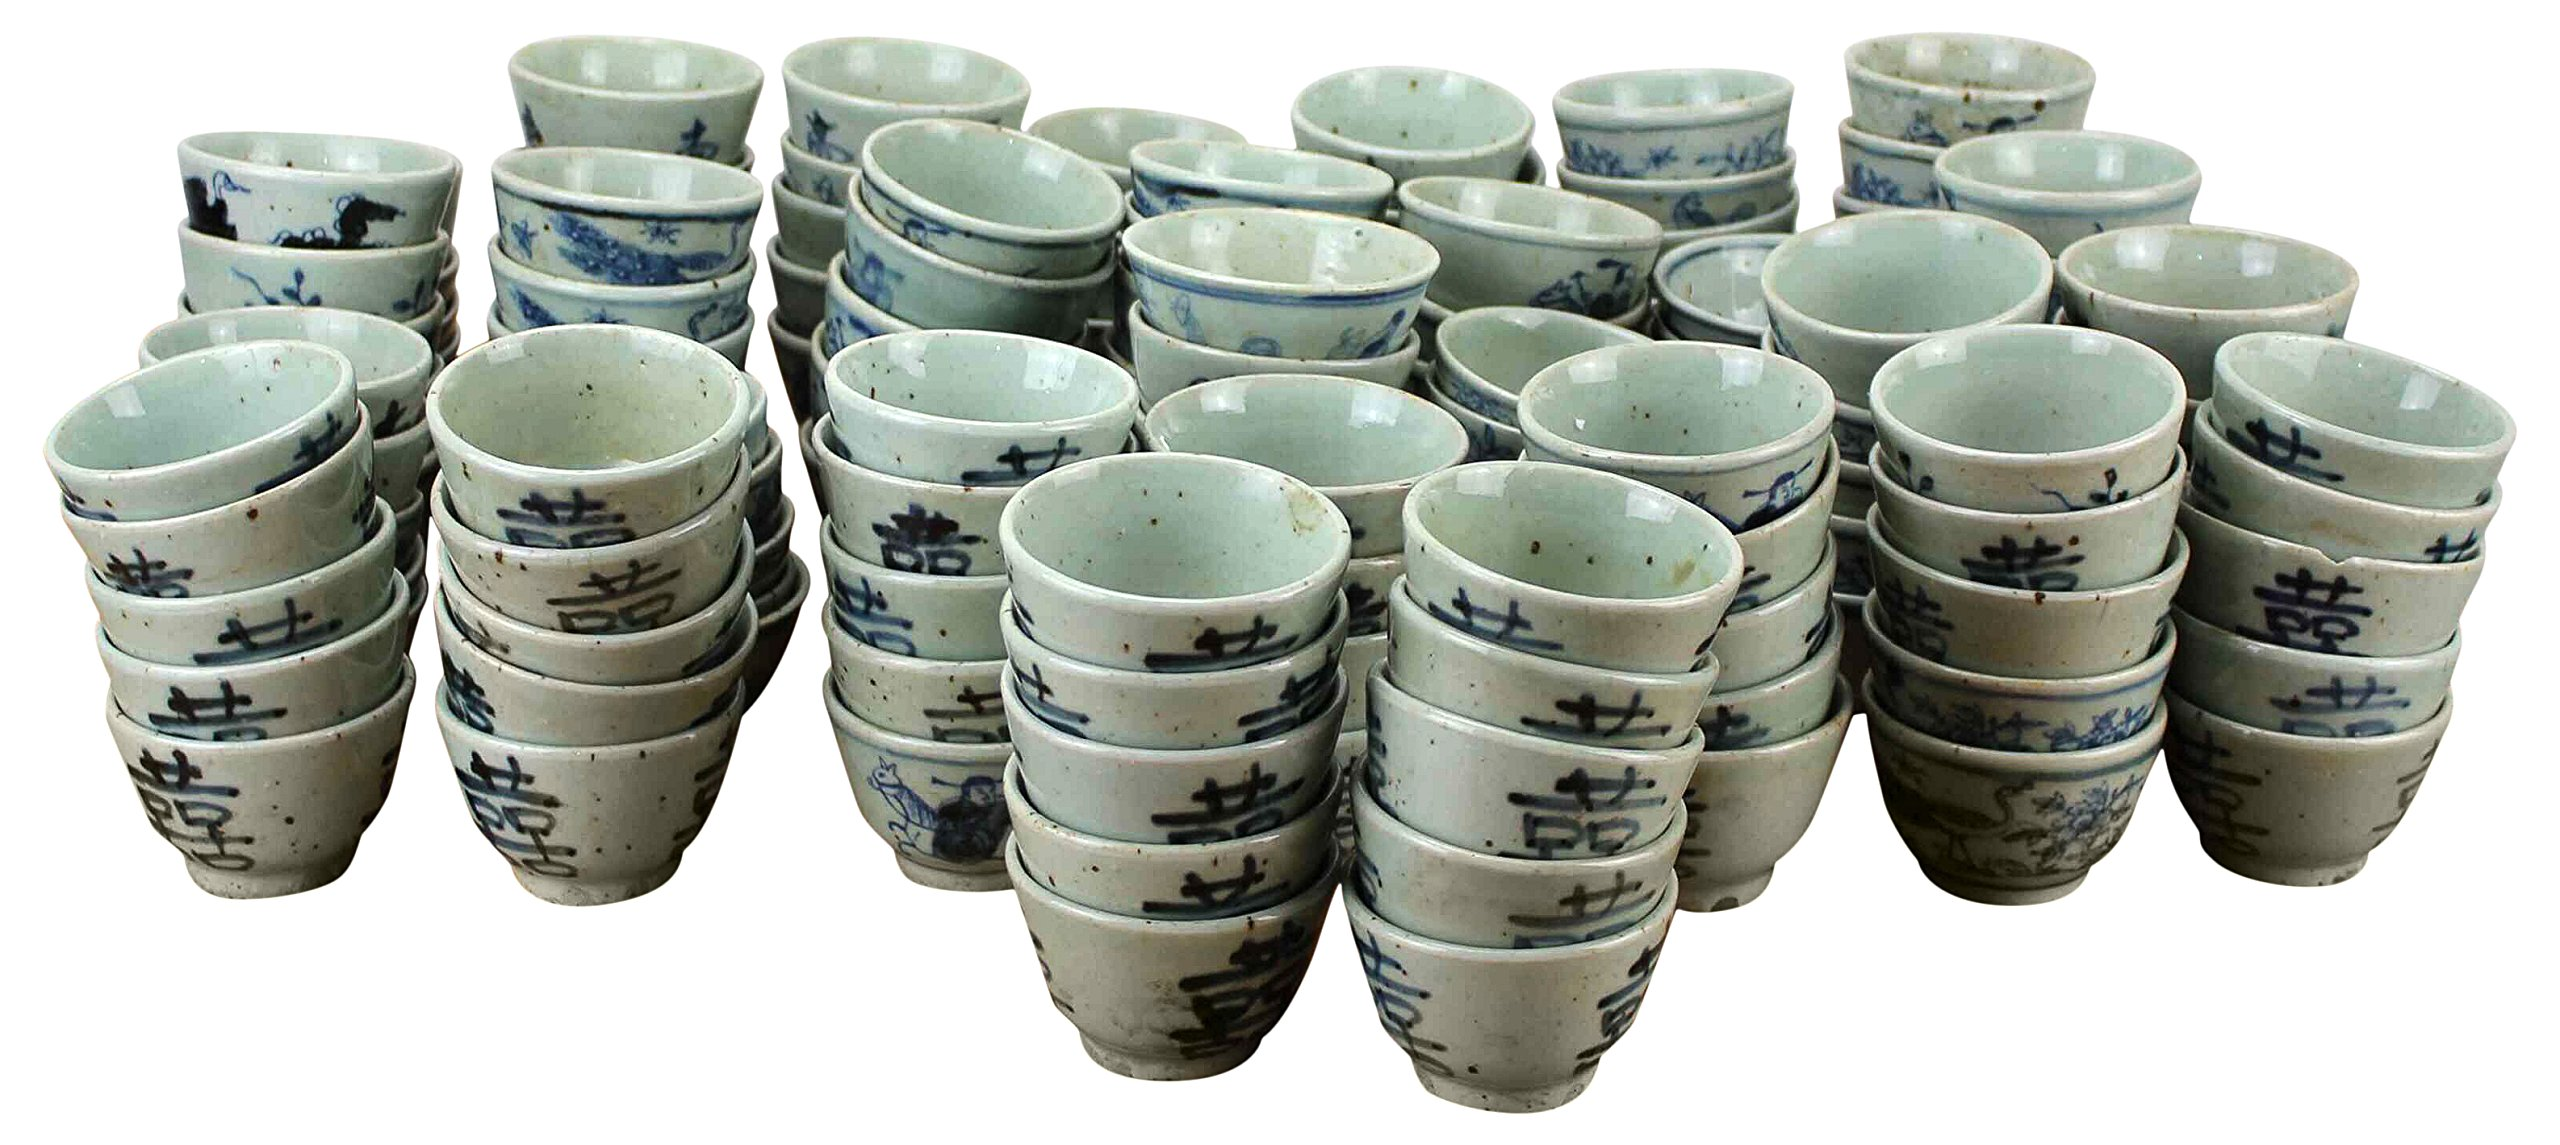 Sarreid SA-AN018 Collection of 316 Cups